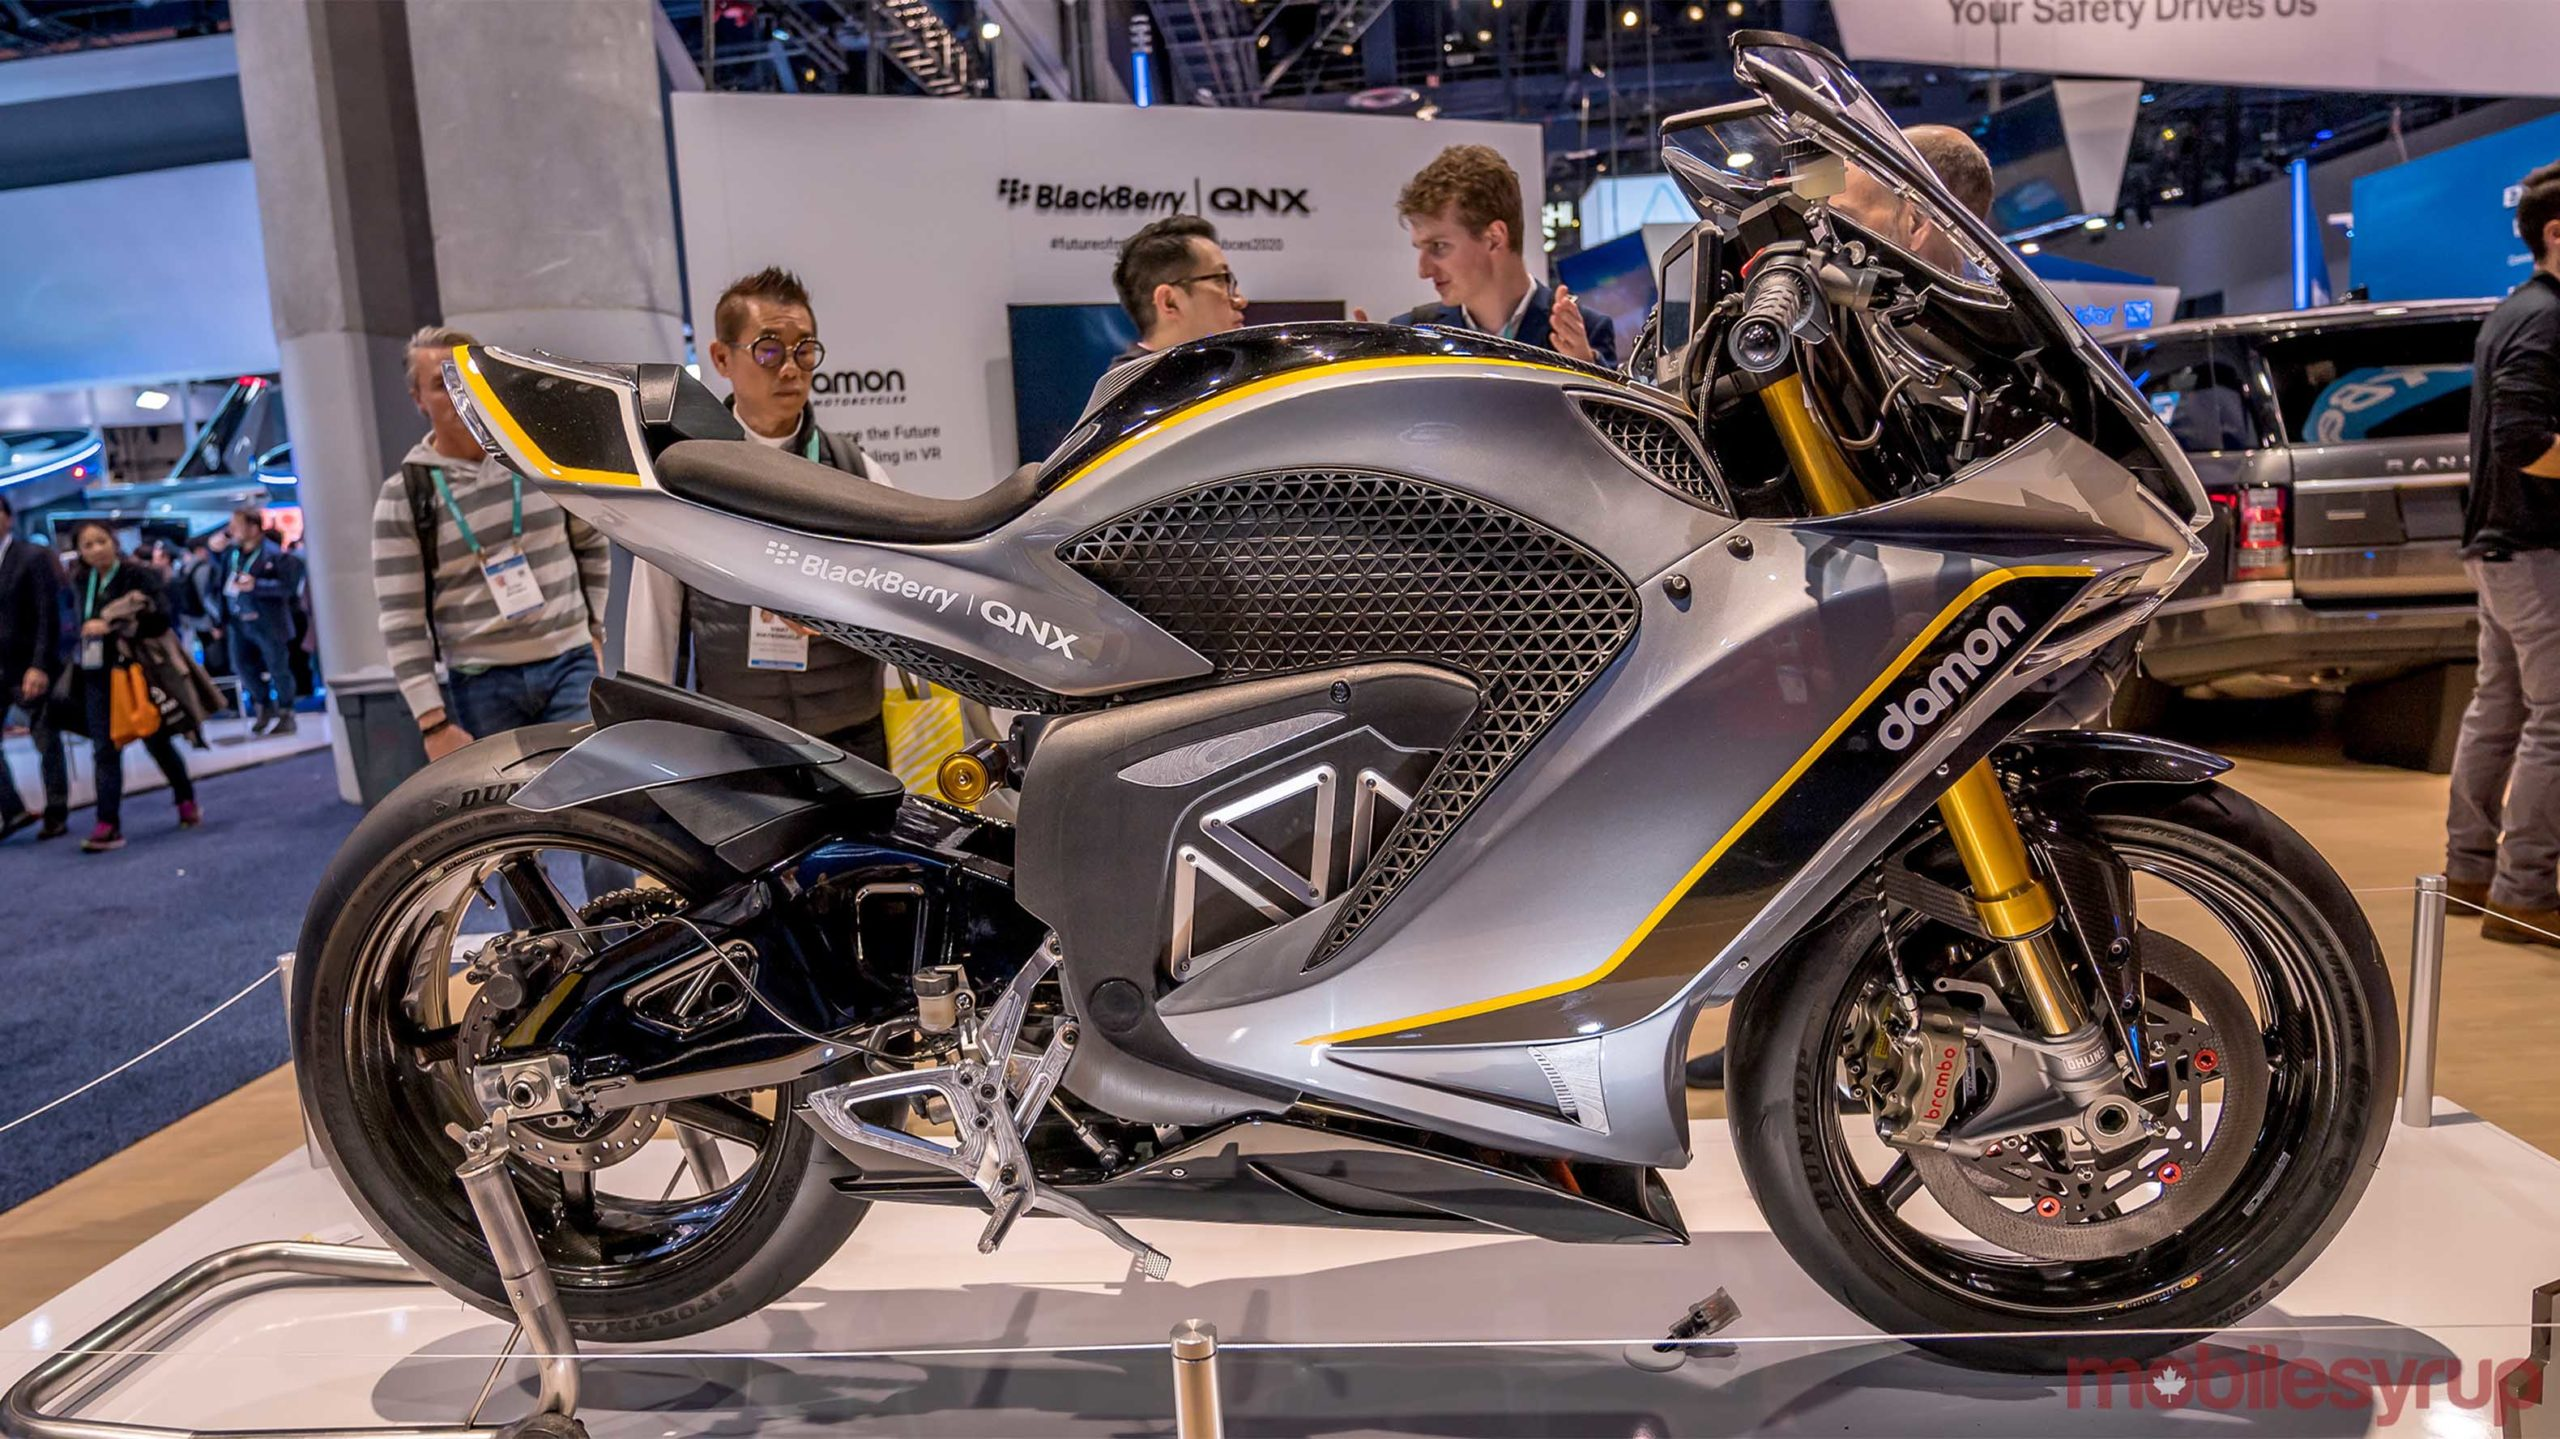 Damon Hypersport Pro at BlackBerry CES 2020 booth